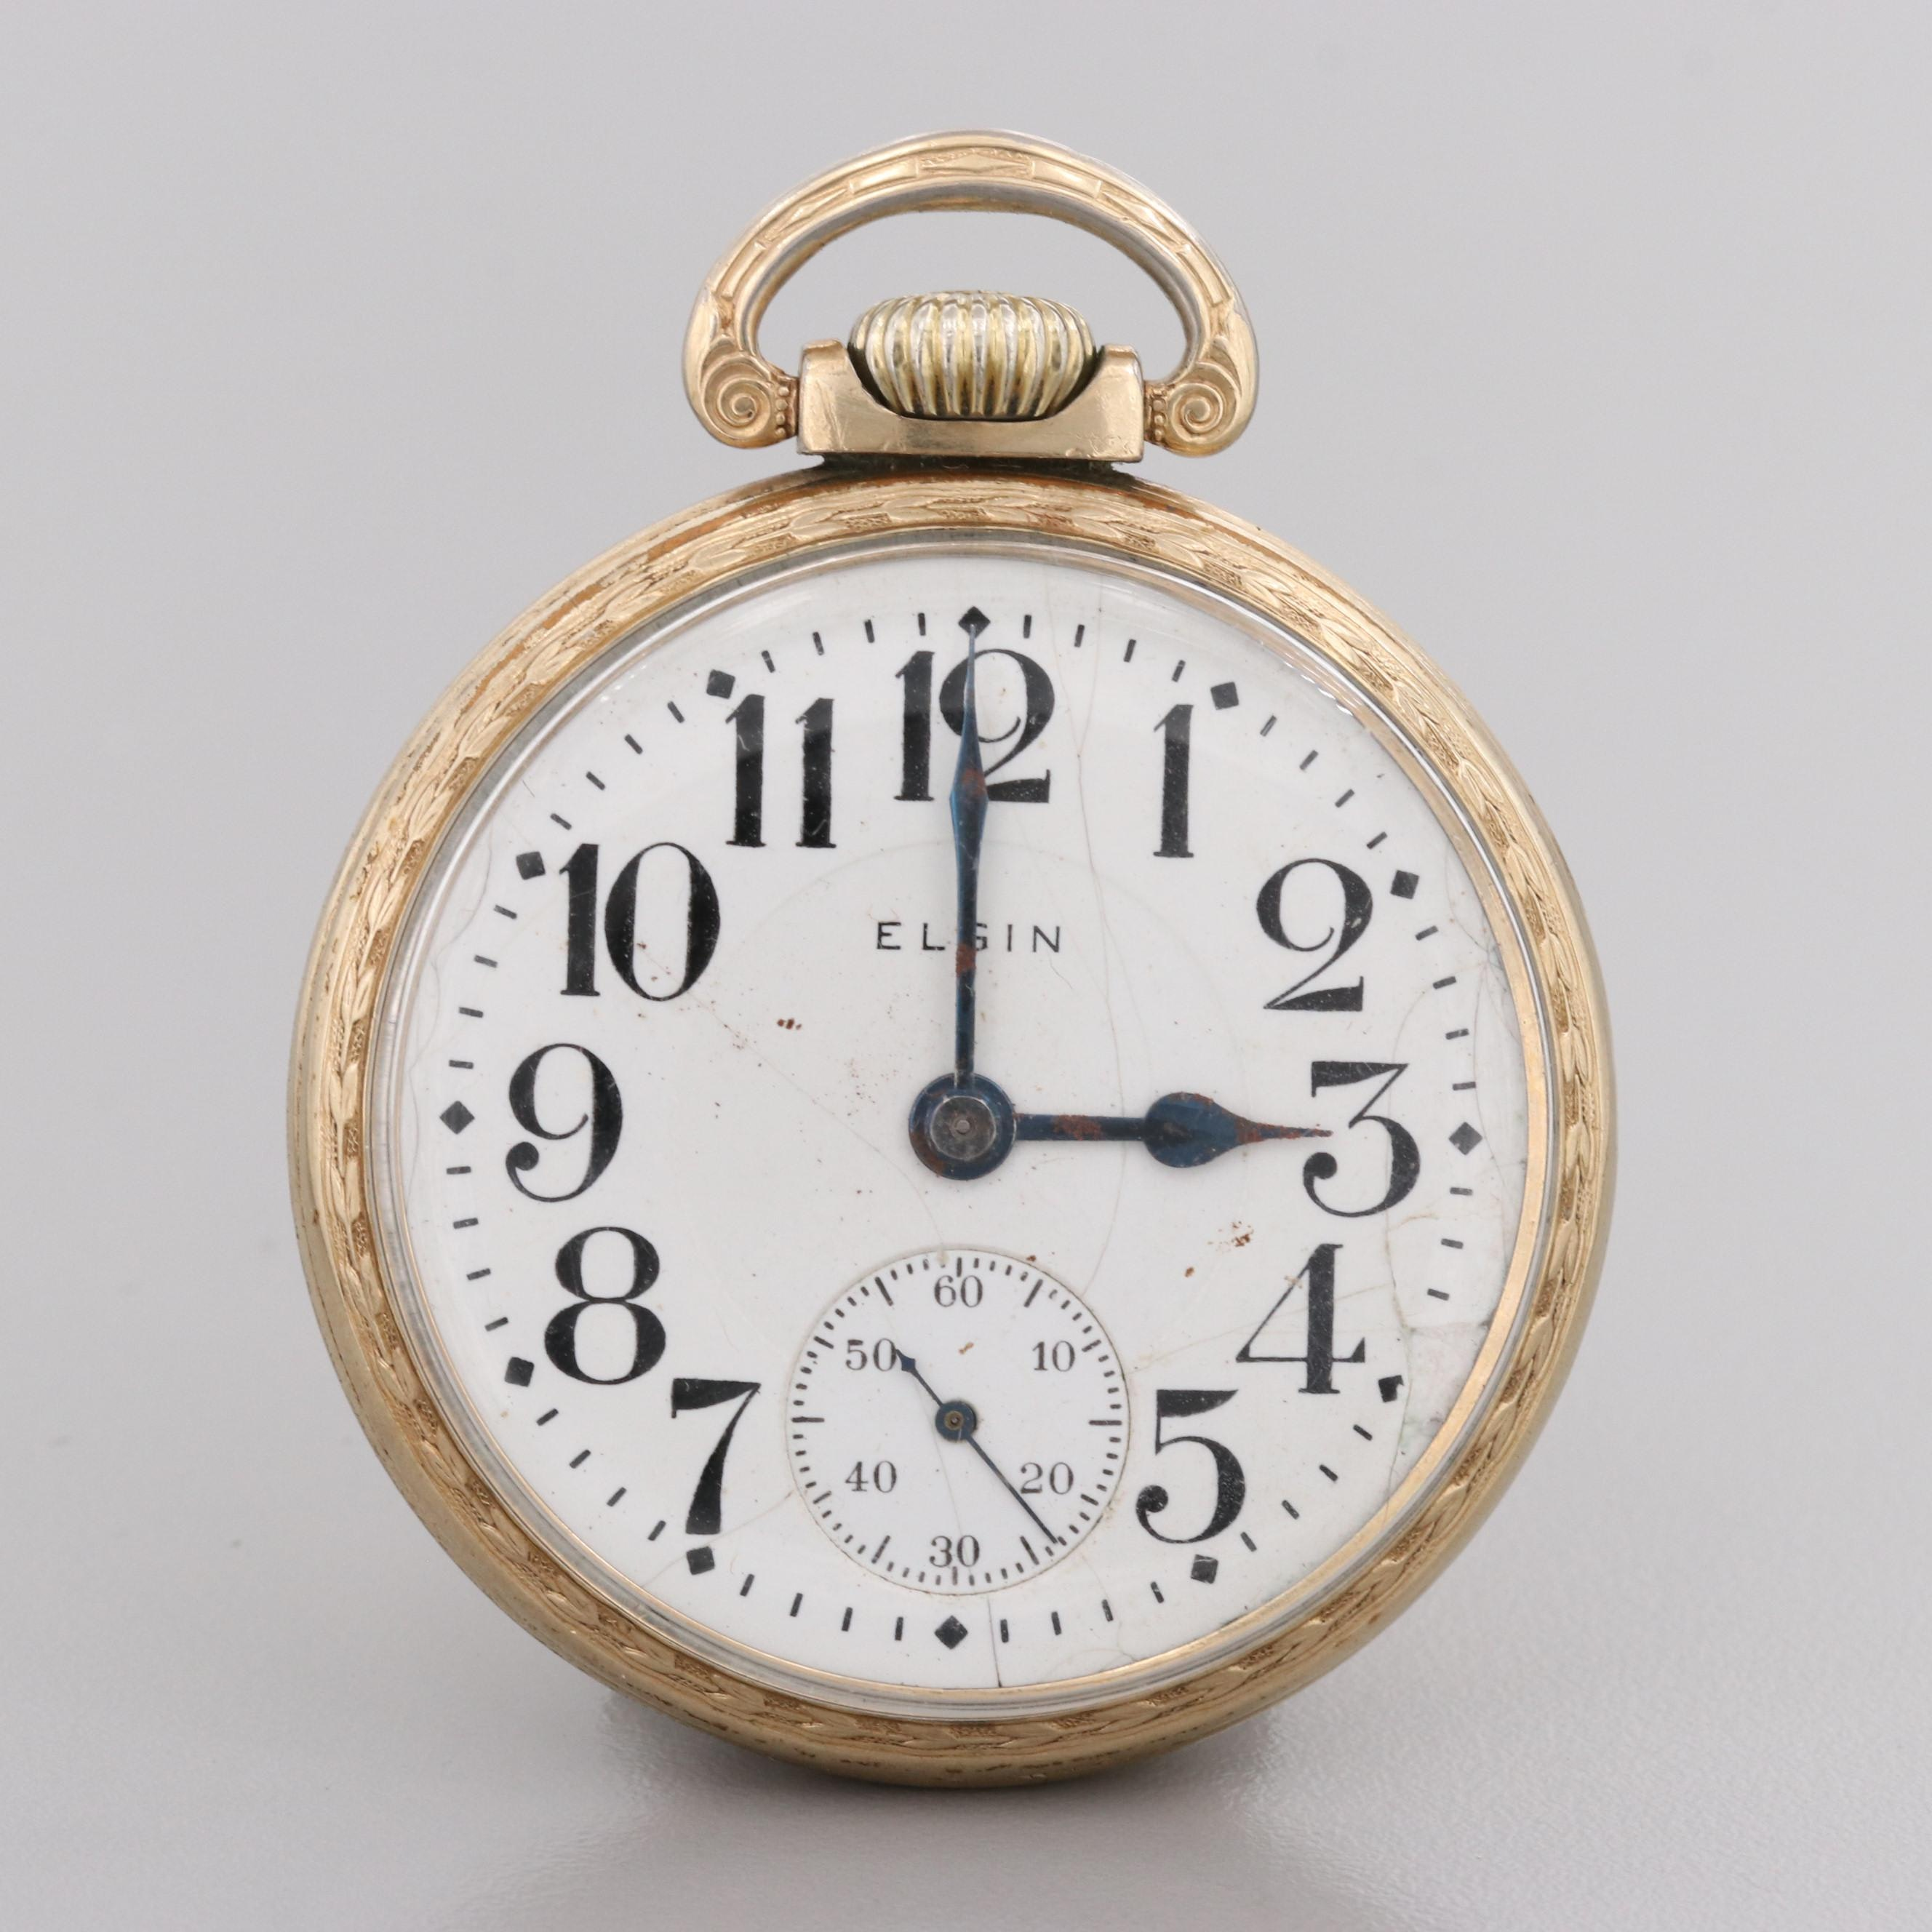 Elgin 10K Rolled Gold Plate Pocket Watch, 1919